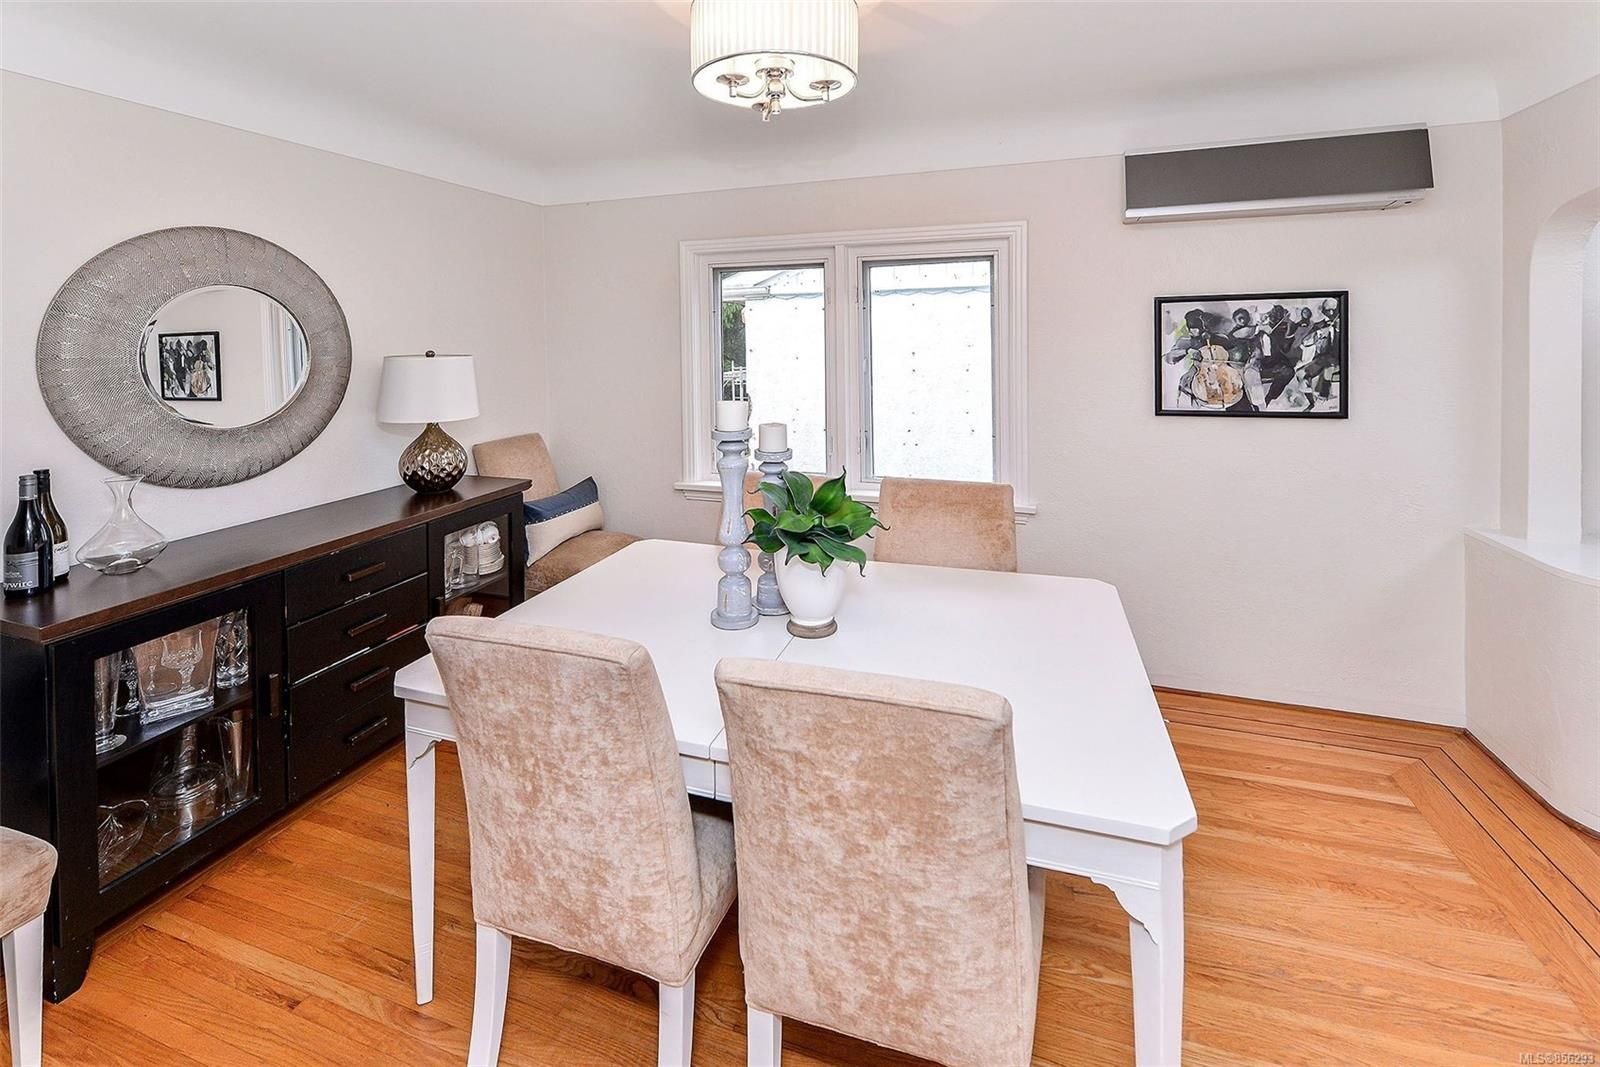 Photo 8: Photos: 1753 Armstrong Ave in : OB North Oak Bay House for sale (Oak Bay)  : MLS®# 856293